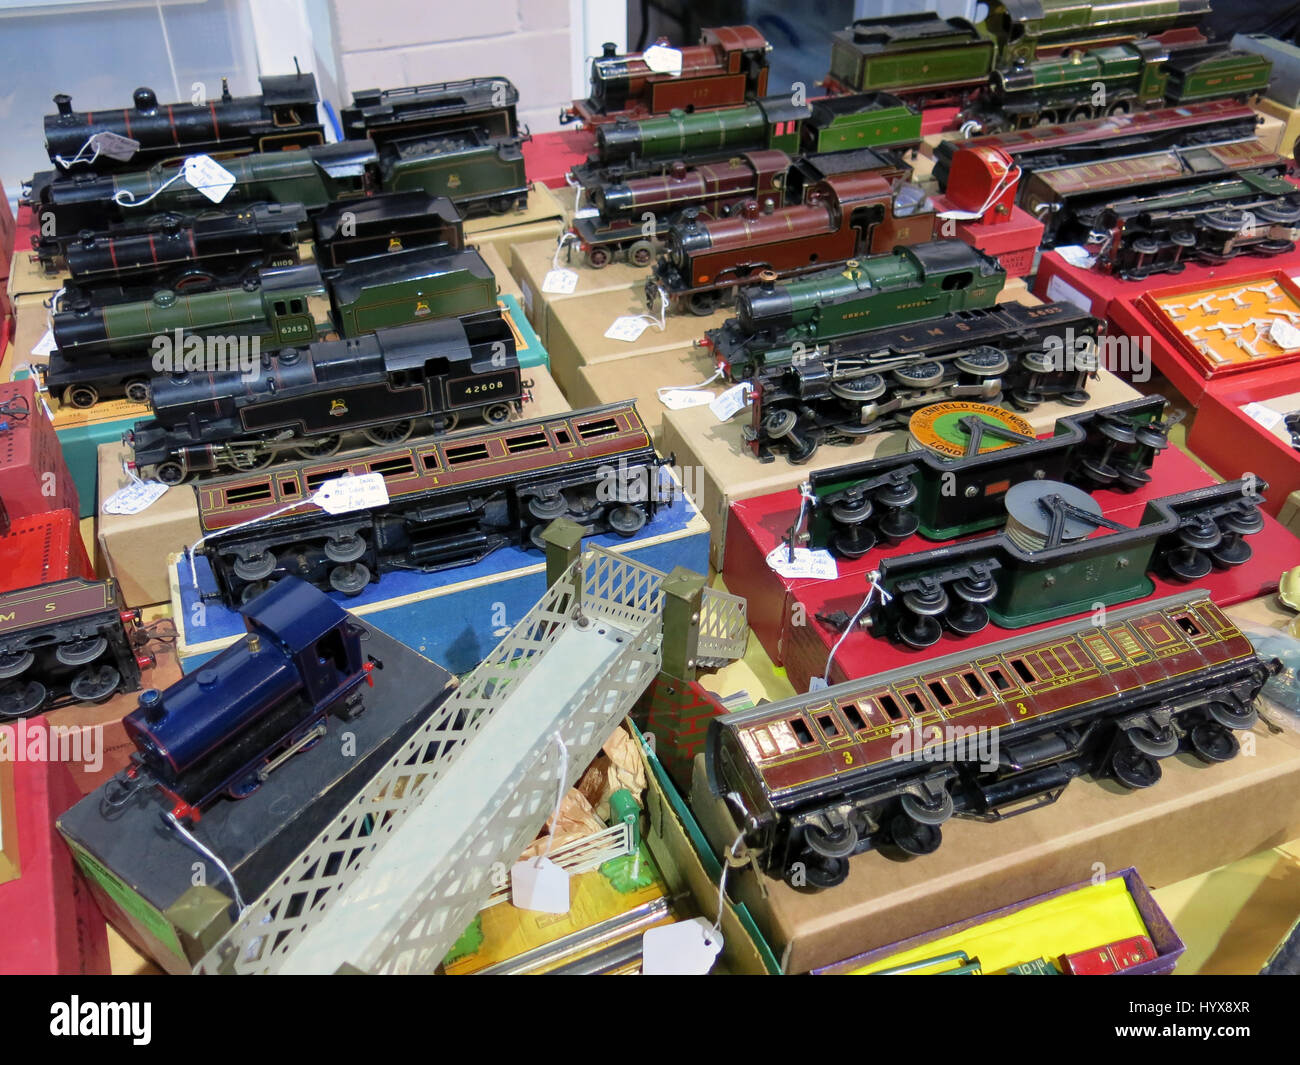 A selection of rare and collectable vintage electric model trains for sale at a Vintage Toy Fair at Bath & West Stock Photo